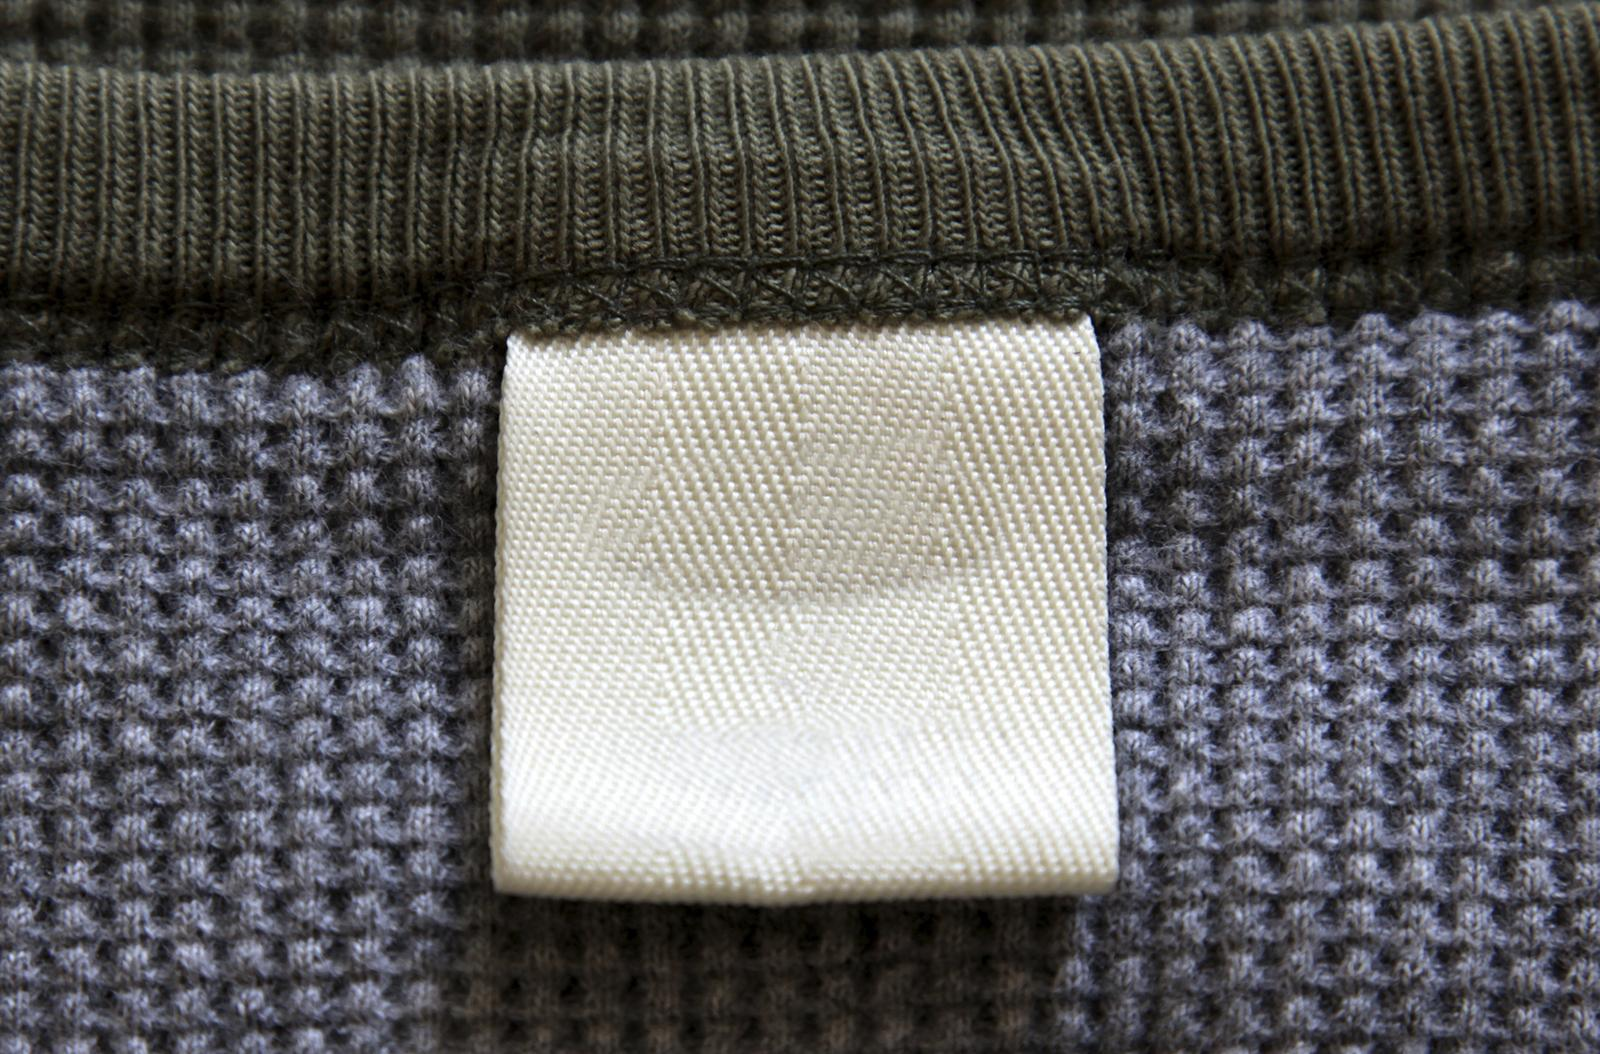 The neck of a jumper, showing the clothing label.